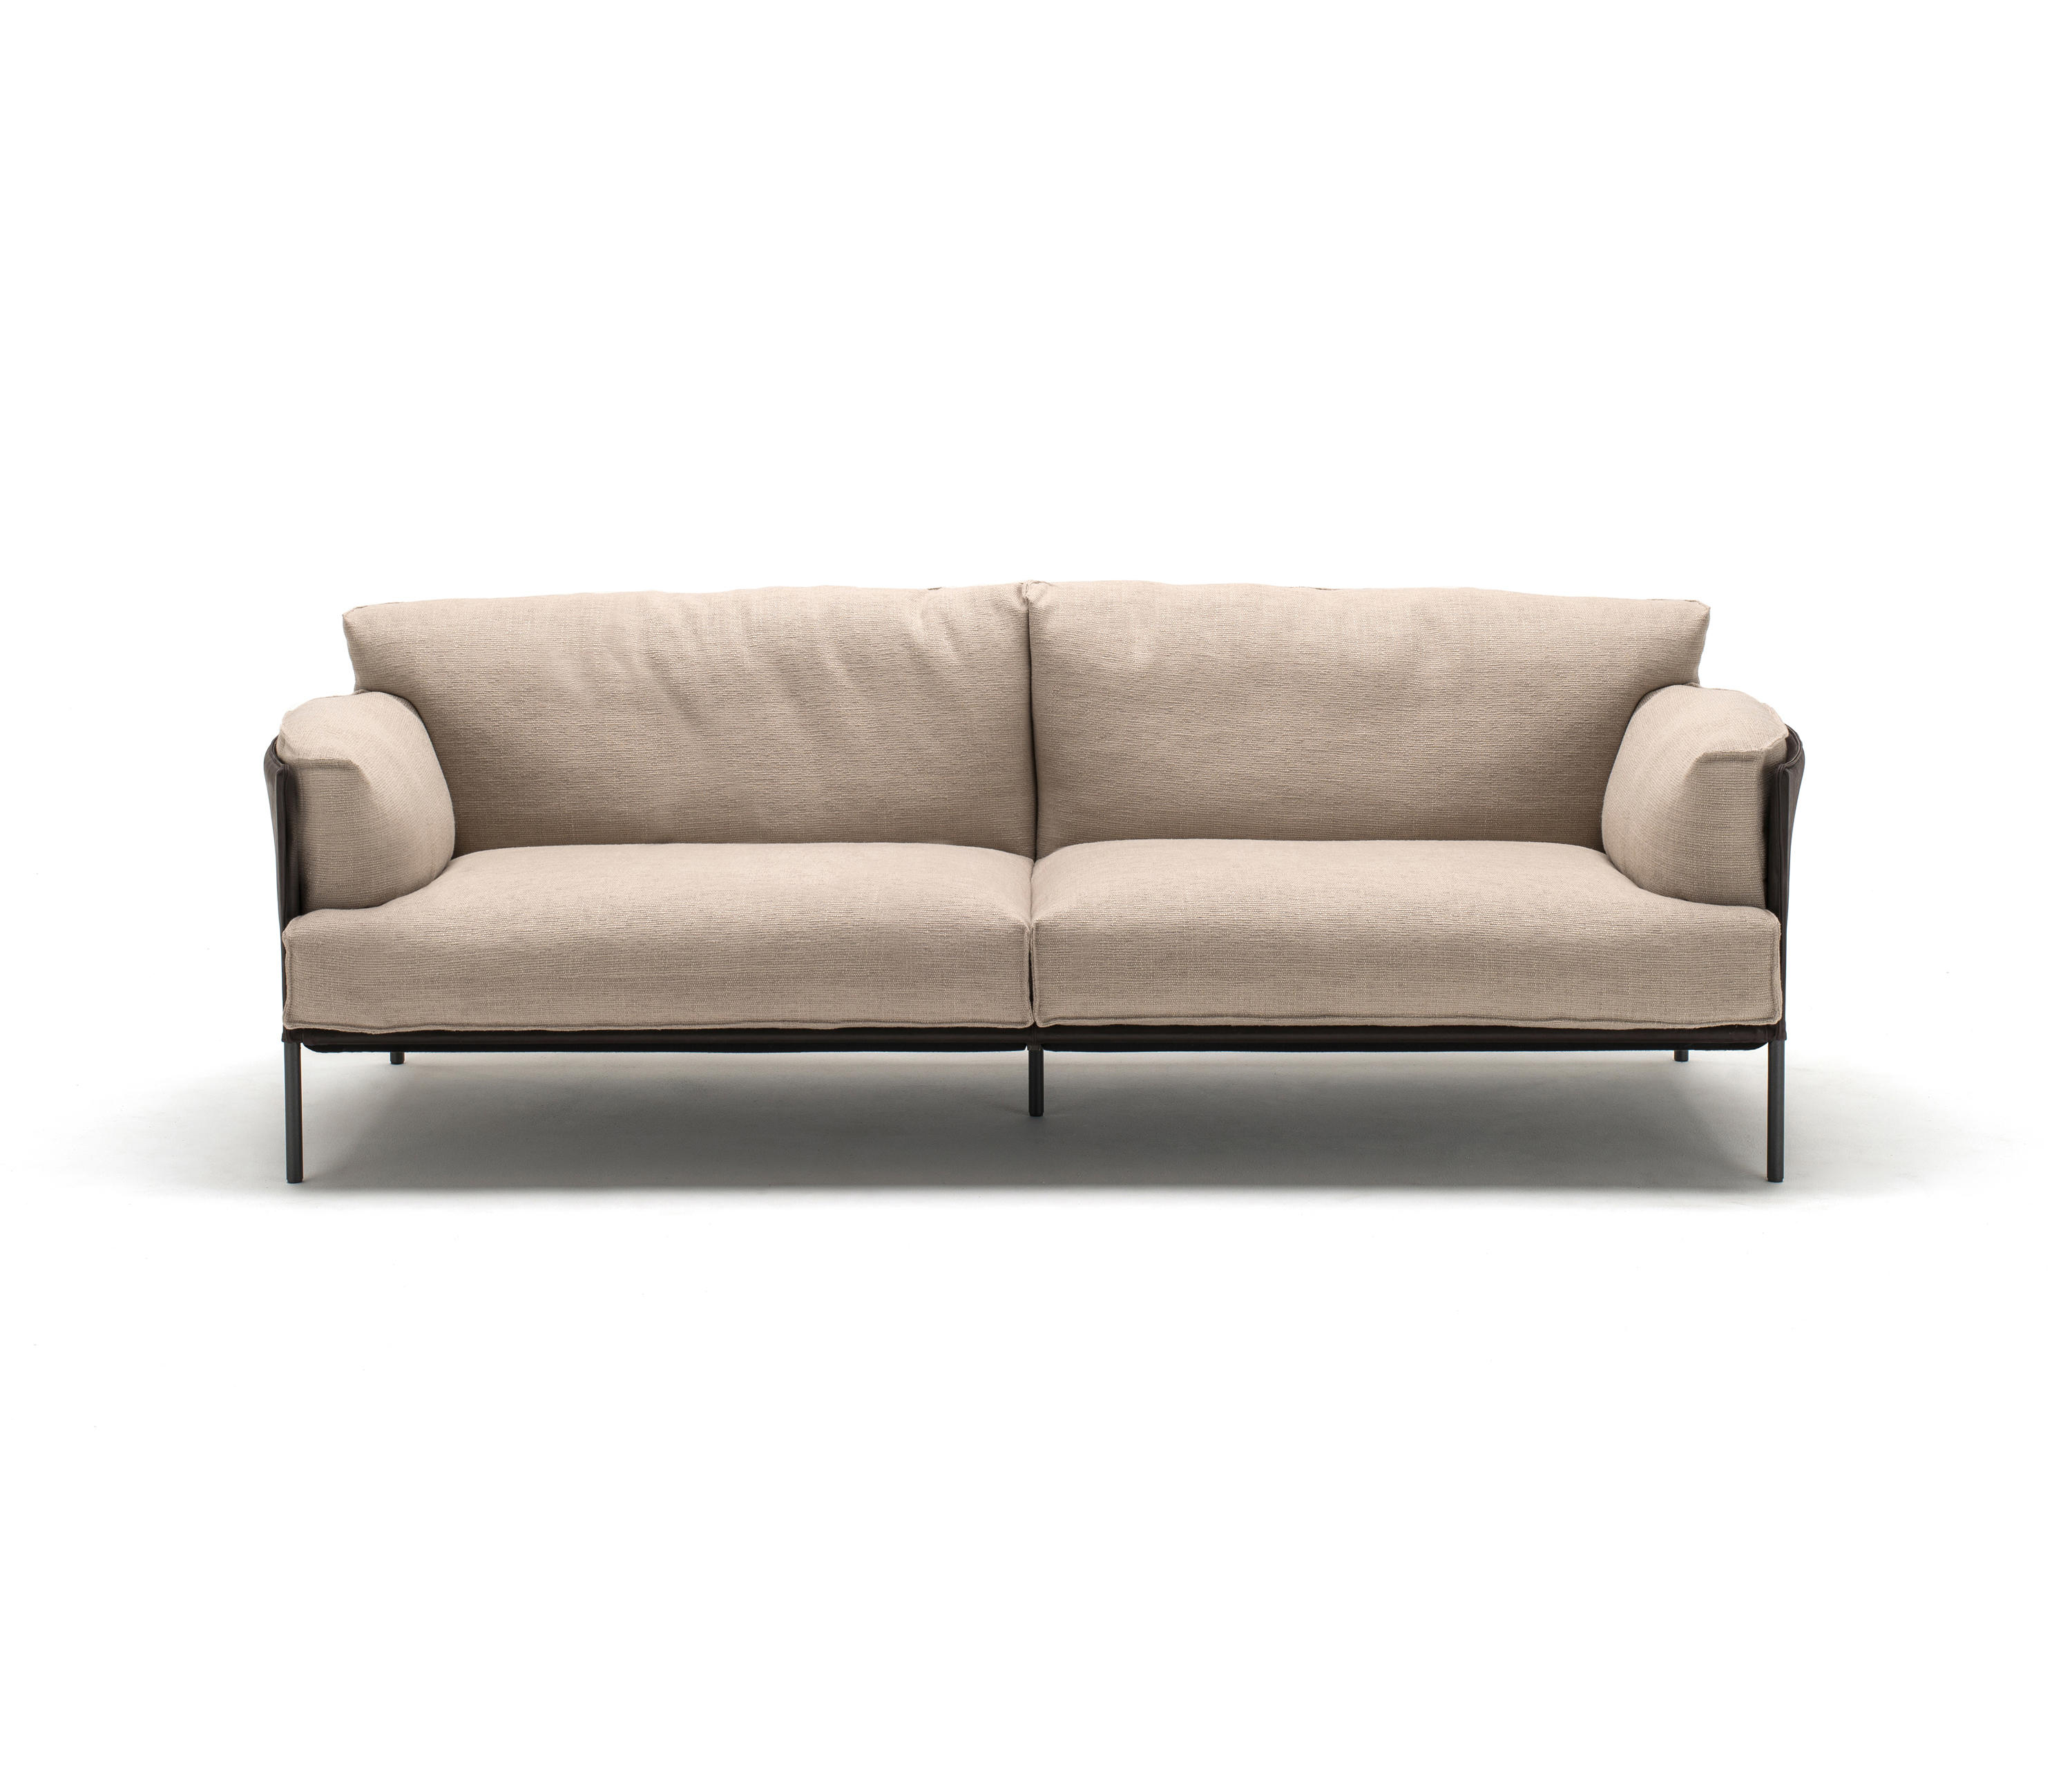 Greene Sofas From Living Divani Architonic